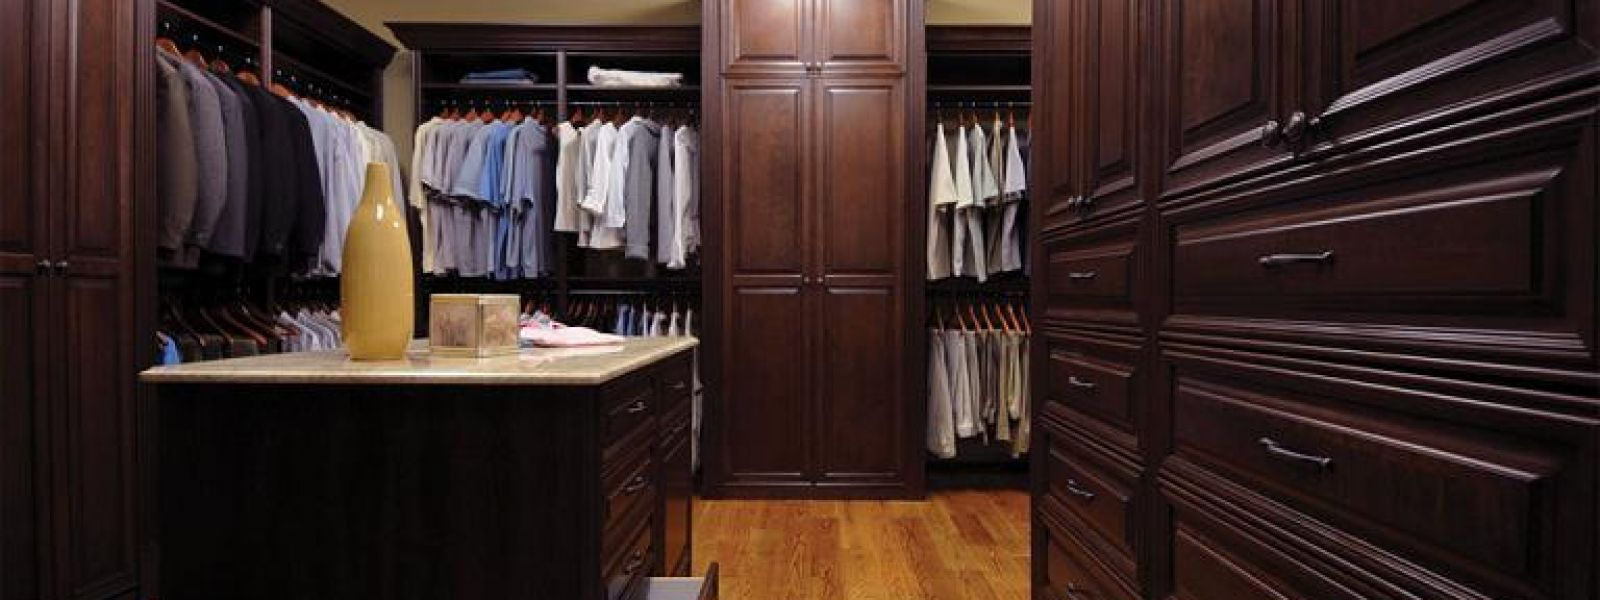 5 Closet Storage Ideas You Should Follow